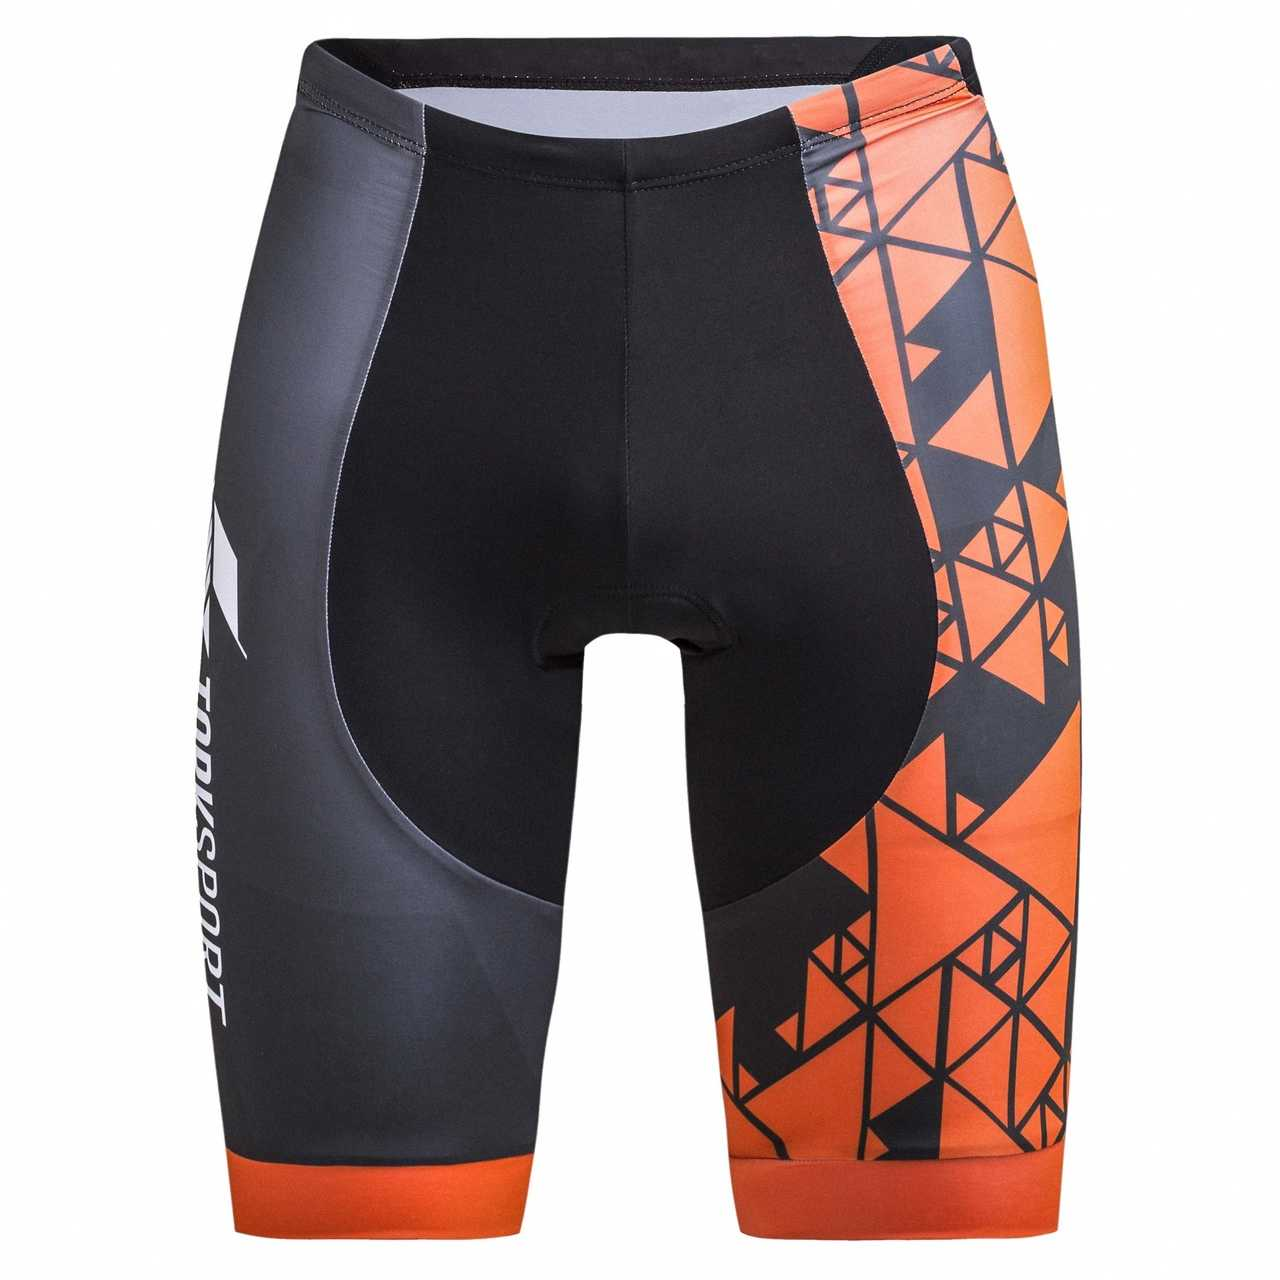 BERMUDA TRIATHLON MASCULINO (POWER ORANGE)